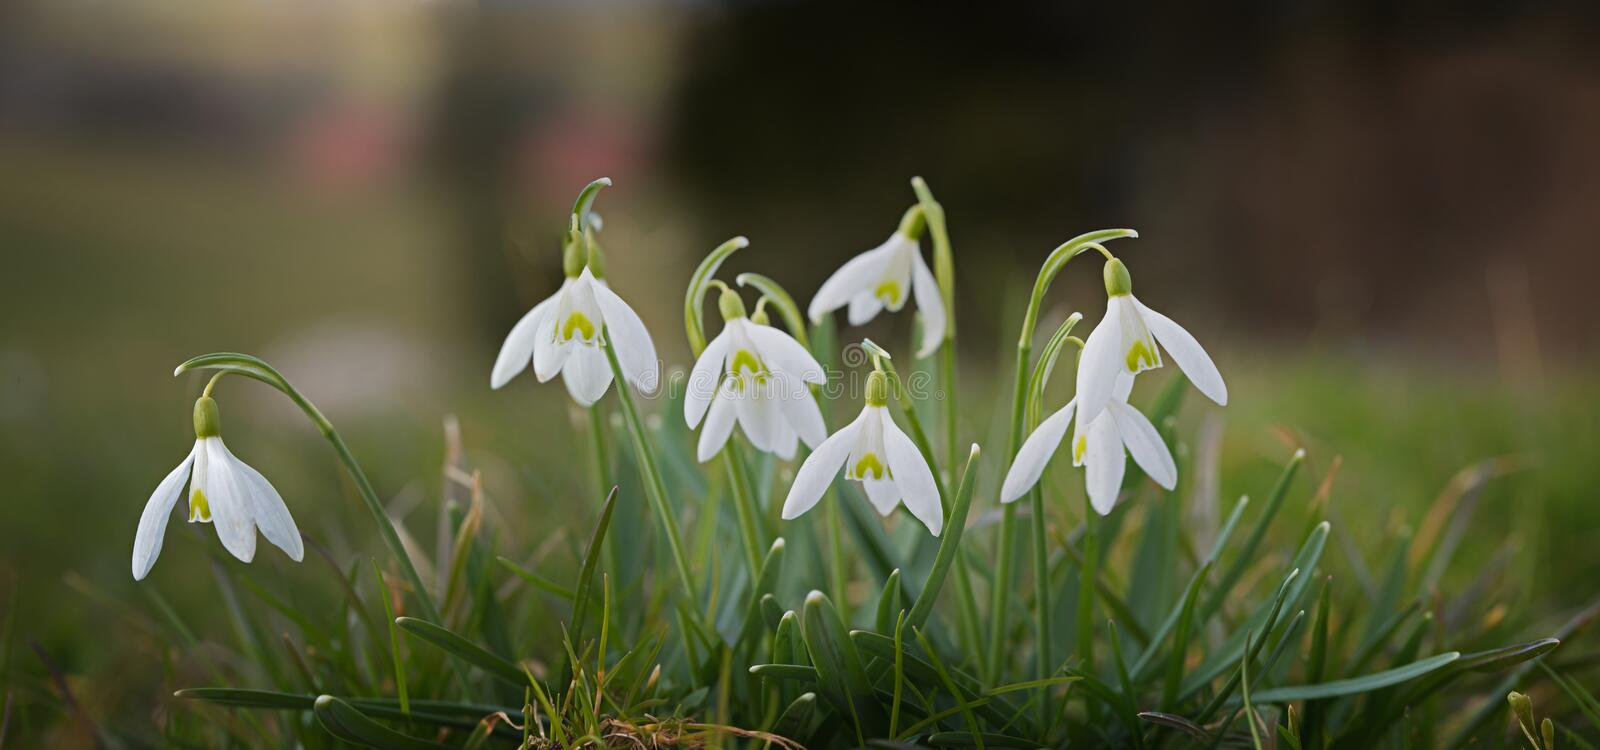 Blooming snowdrops with soft green background, panorama. Blooming snowdrops with soft green background, spring is coming soon. panorama format stock photography